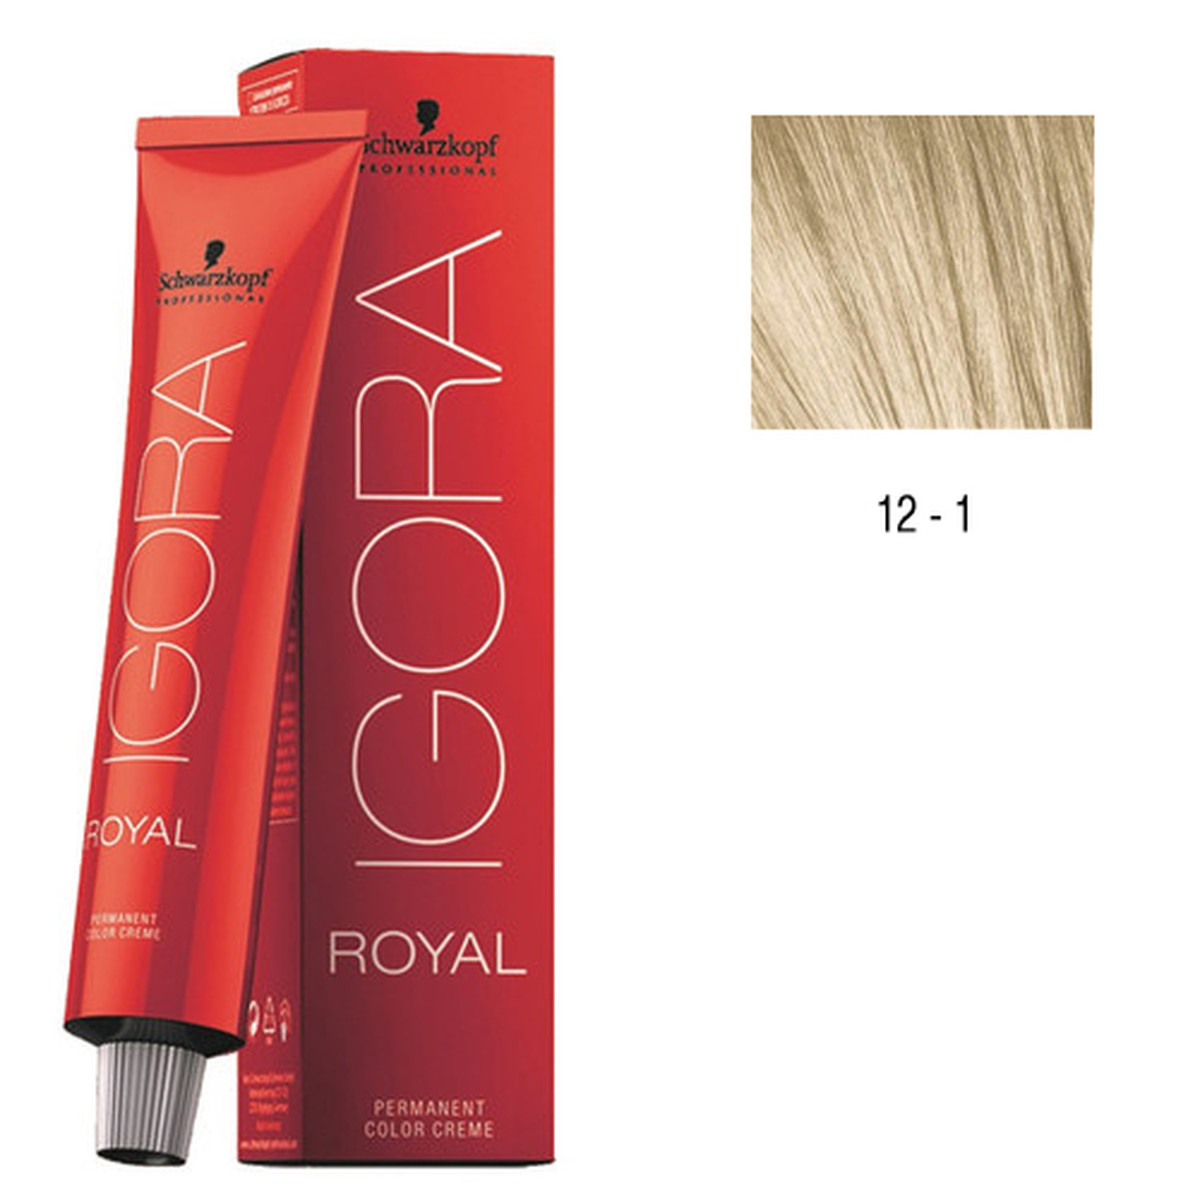 12-1 Special Blonde Cendre HighLift 60g - Igora Royal by Schwarzkopf